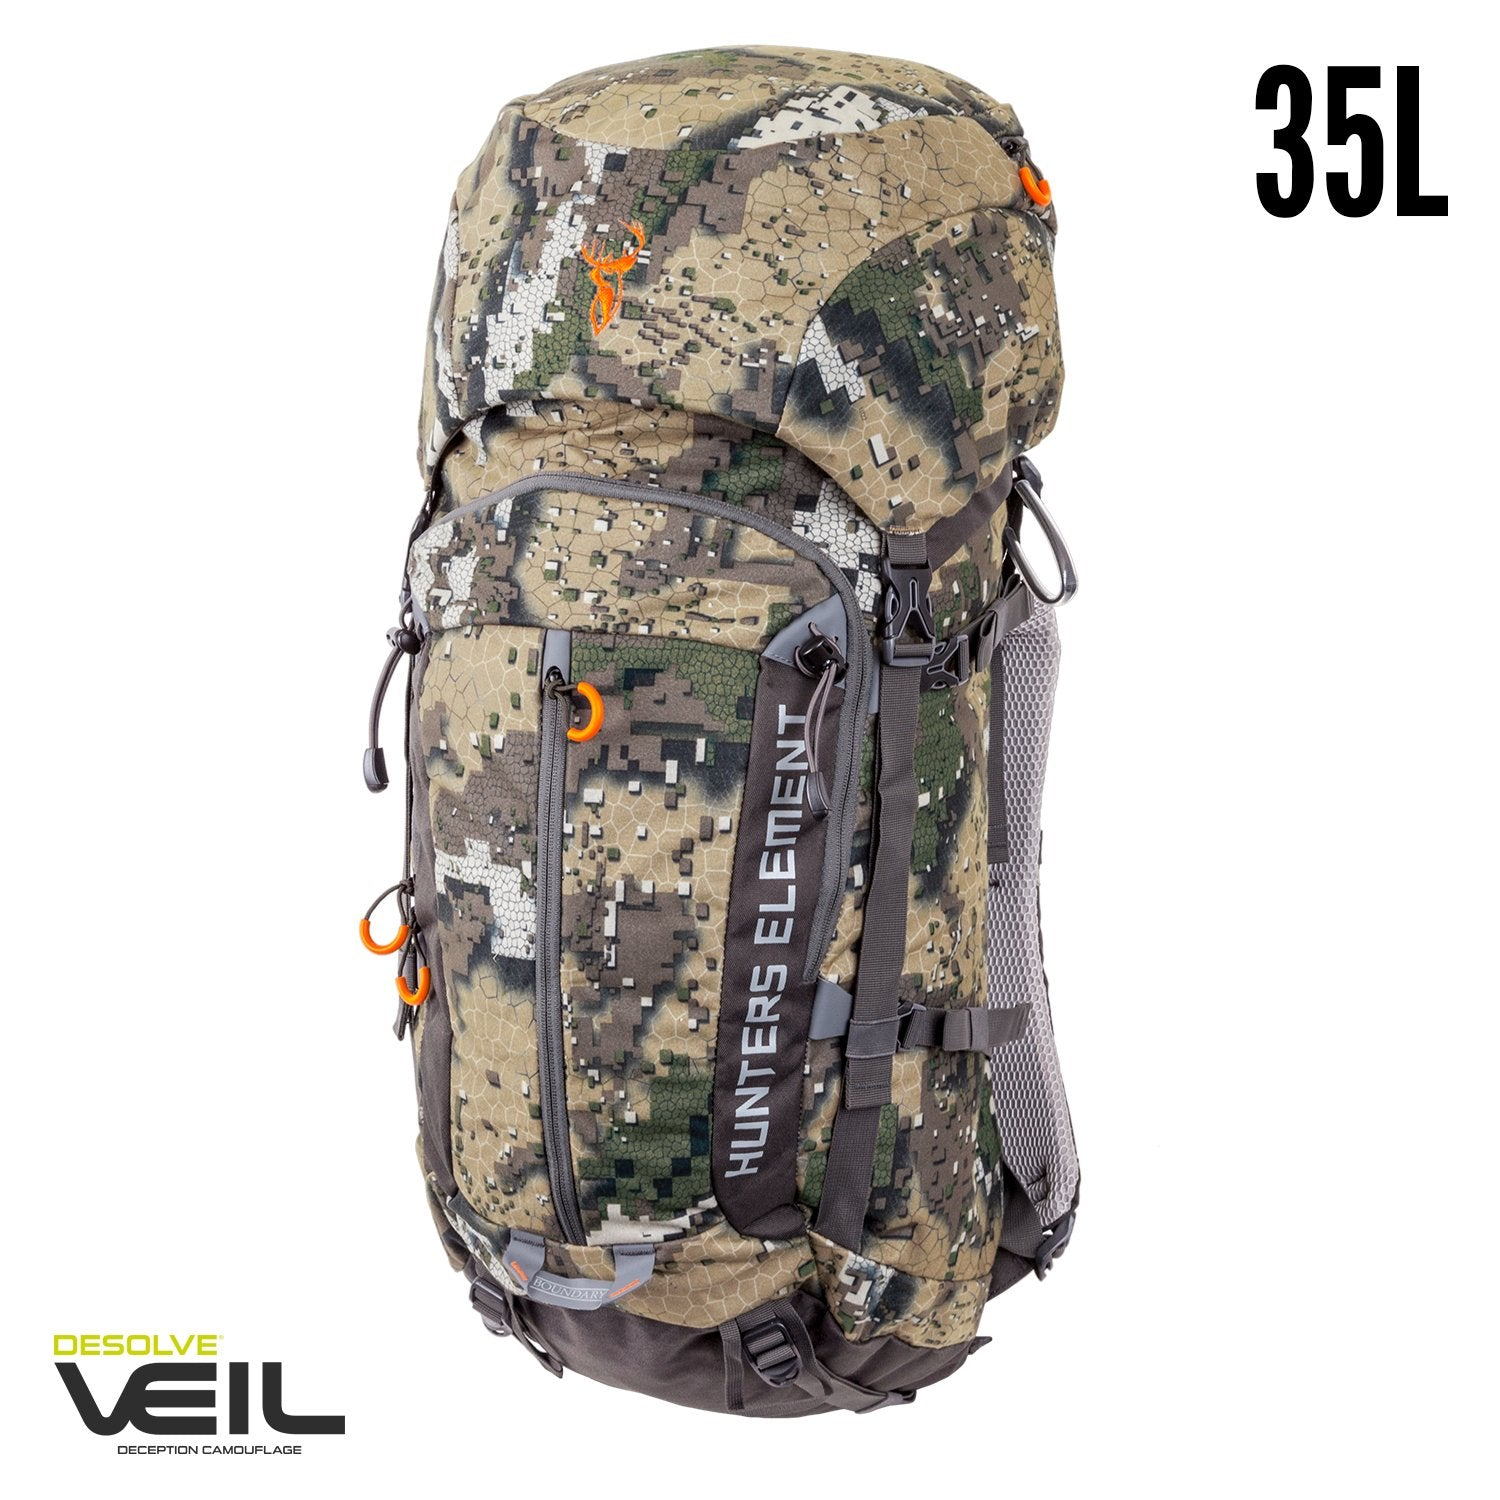 Backpacks, Daypacks & Pouches